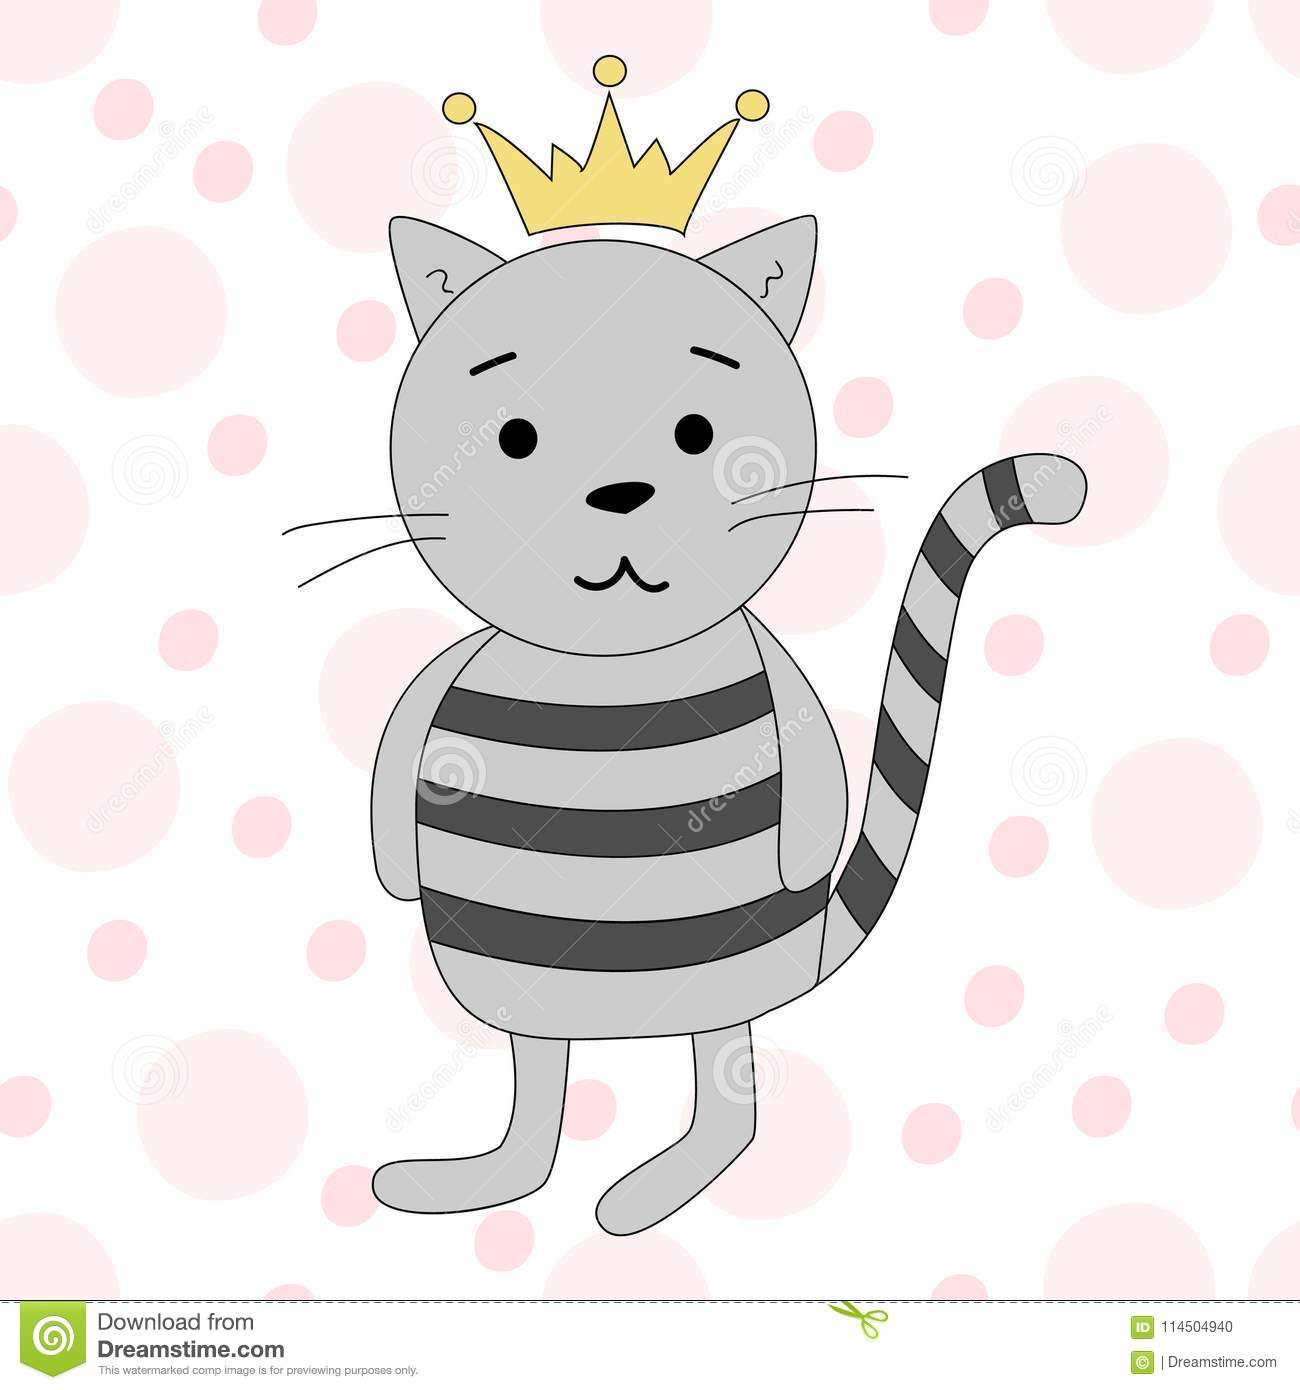 Vector Illustration Of A Cartoon Cat With Crown Cartoon Print Stock Vector Illustration Of Design Face 114504940